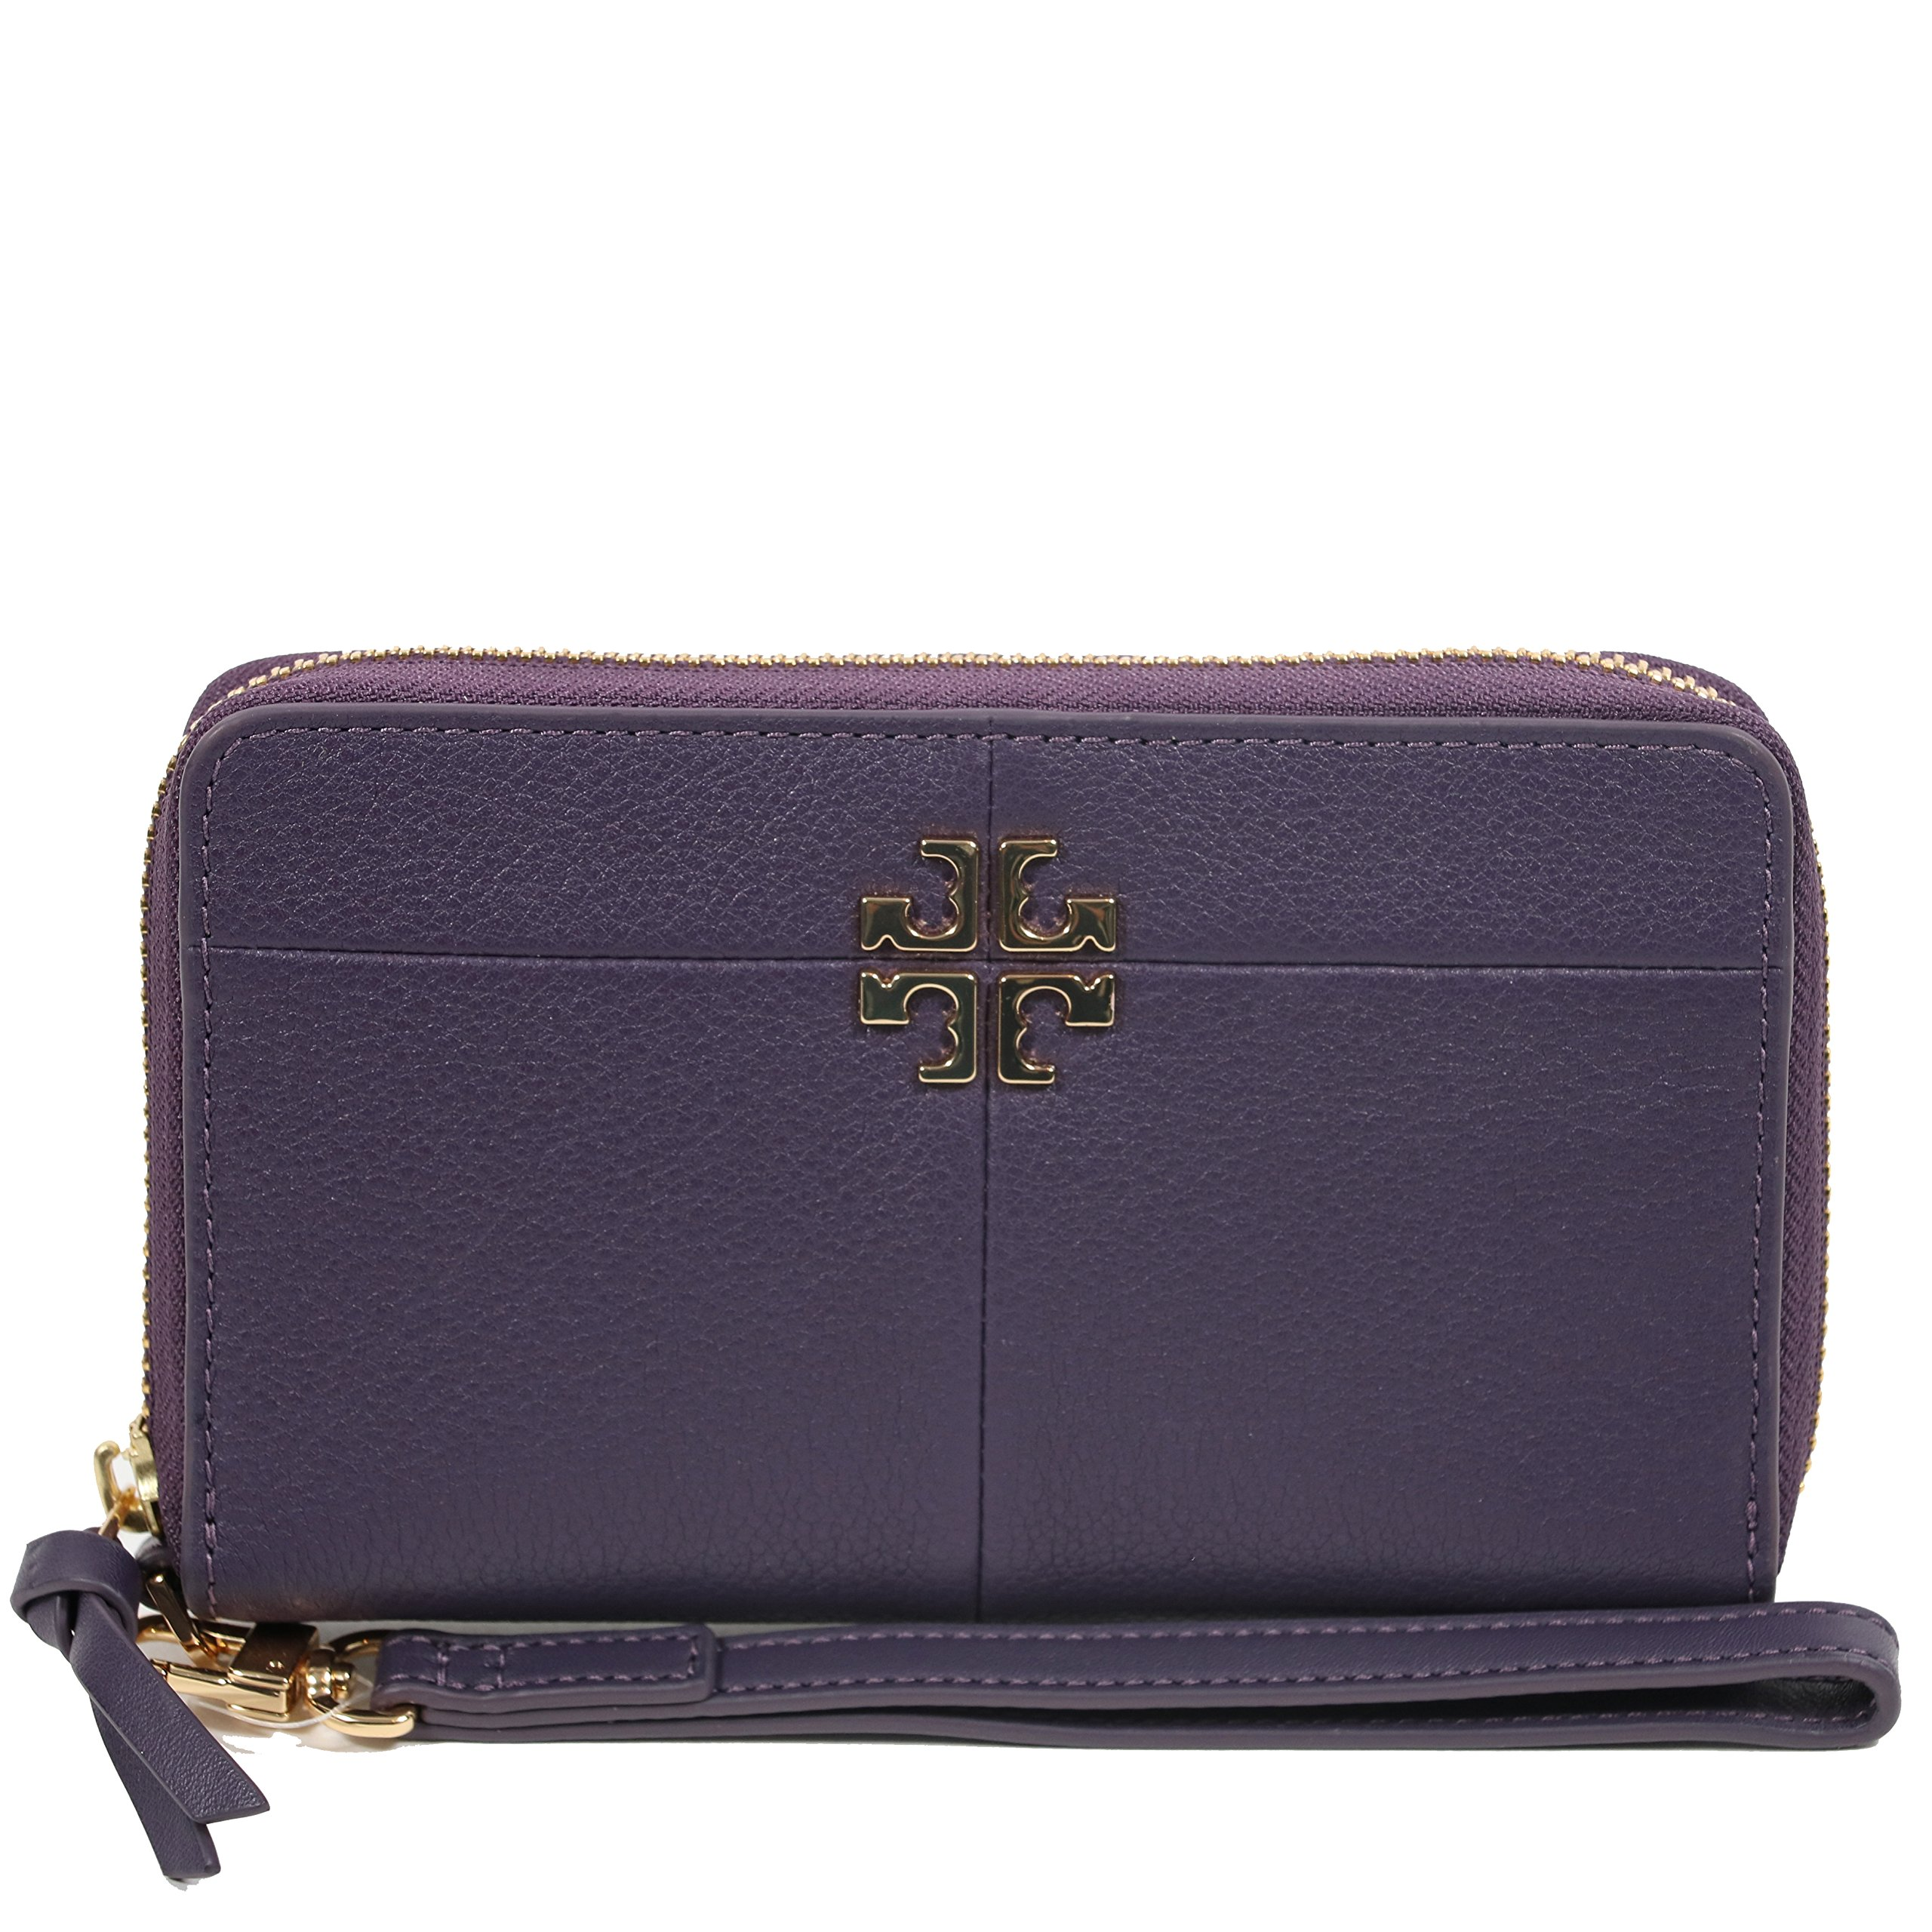 Tory Burch Wallet Wristlet Ivy Smartphone (Nightshade) by Tory Burch